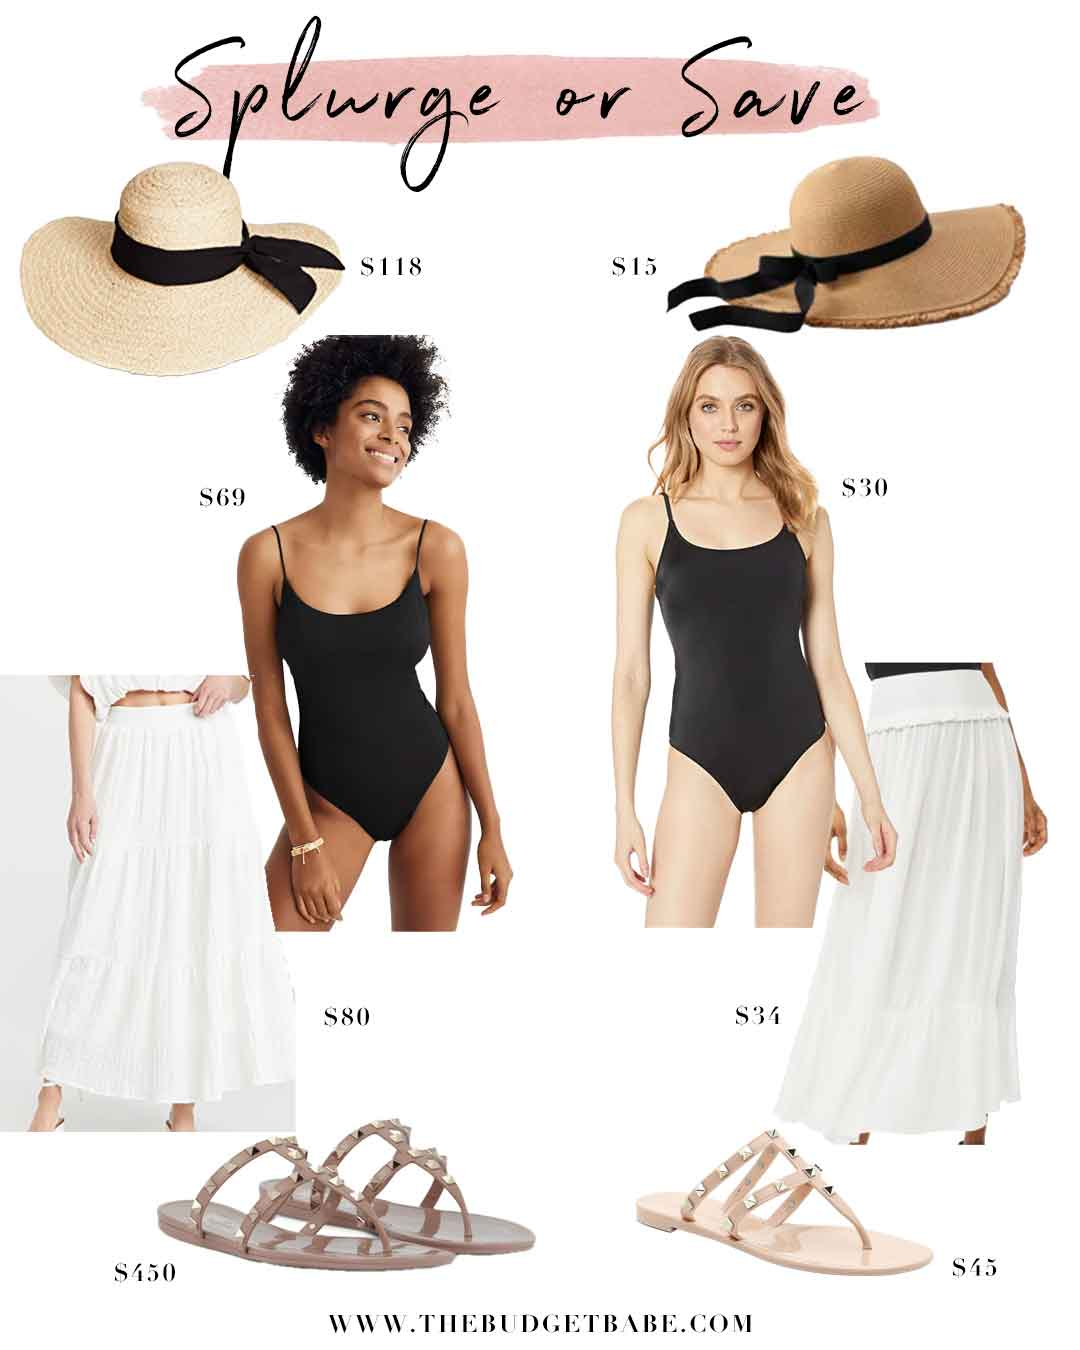 Splurge or Save on this beach outfit!